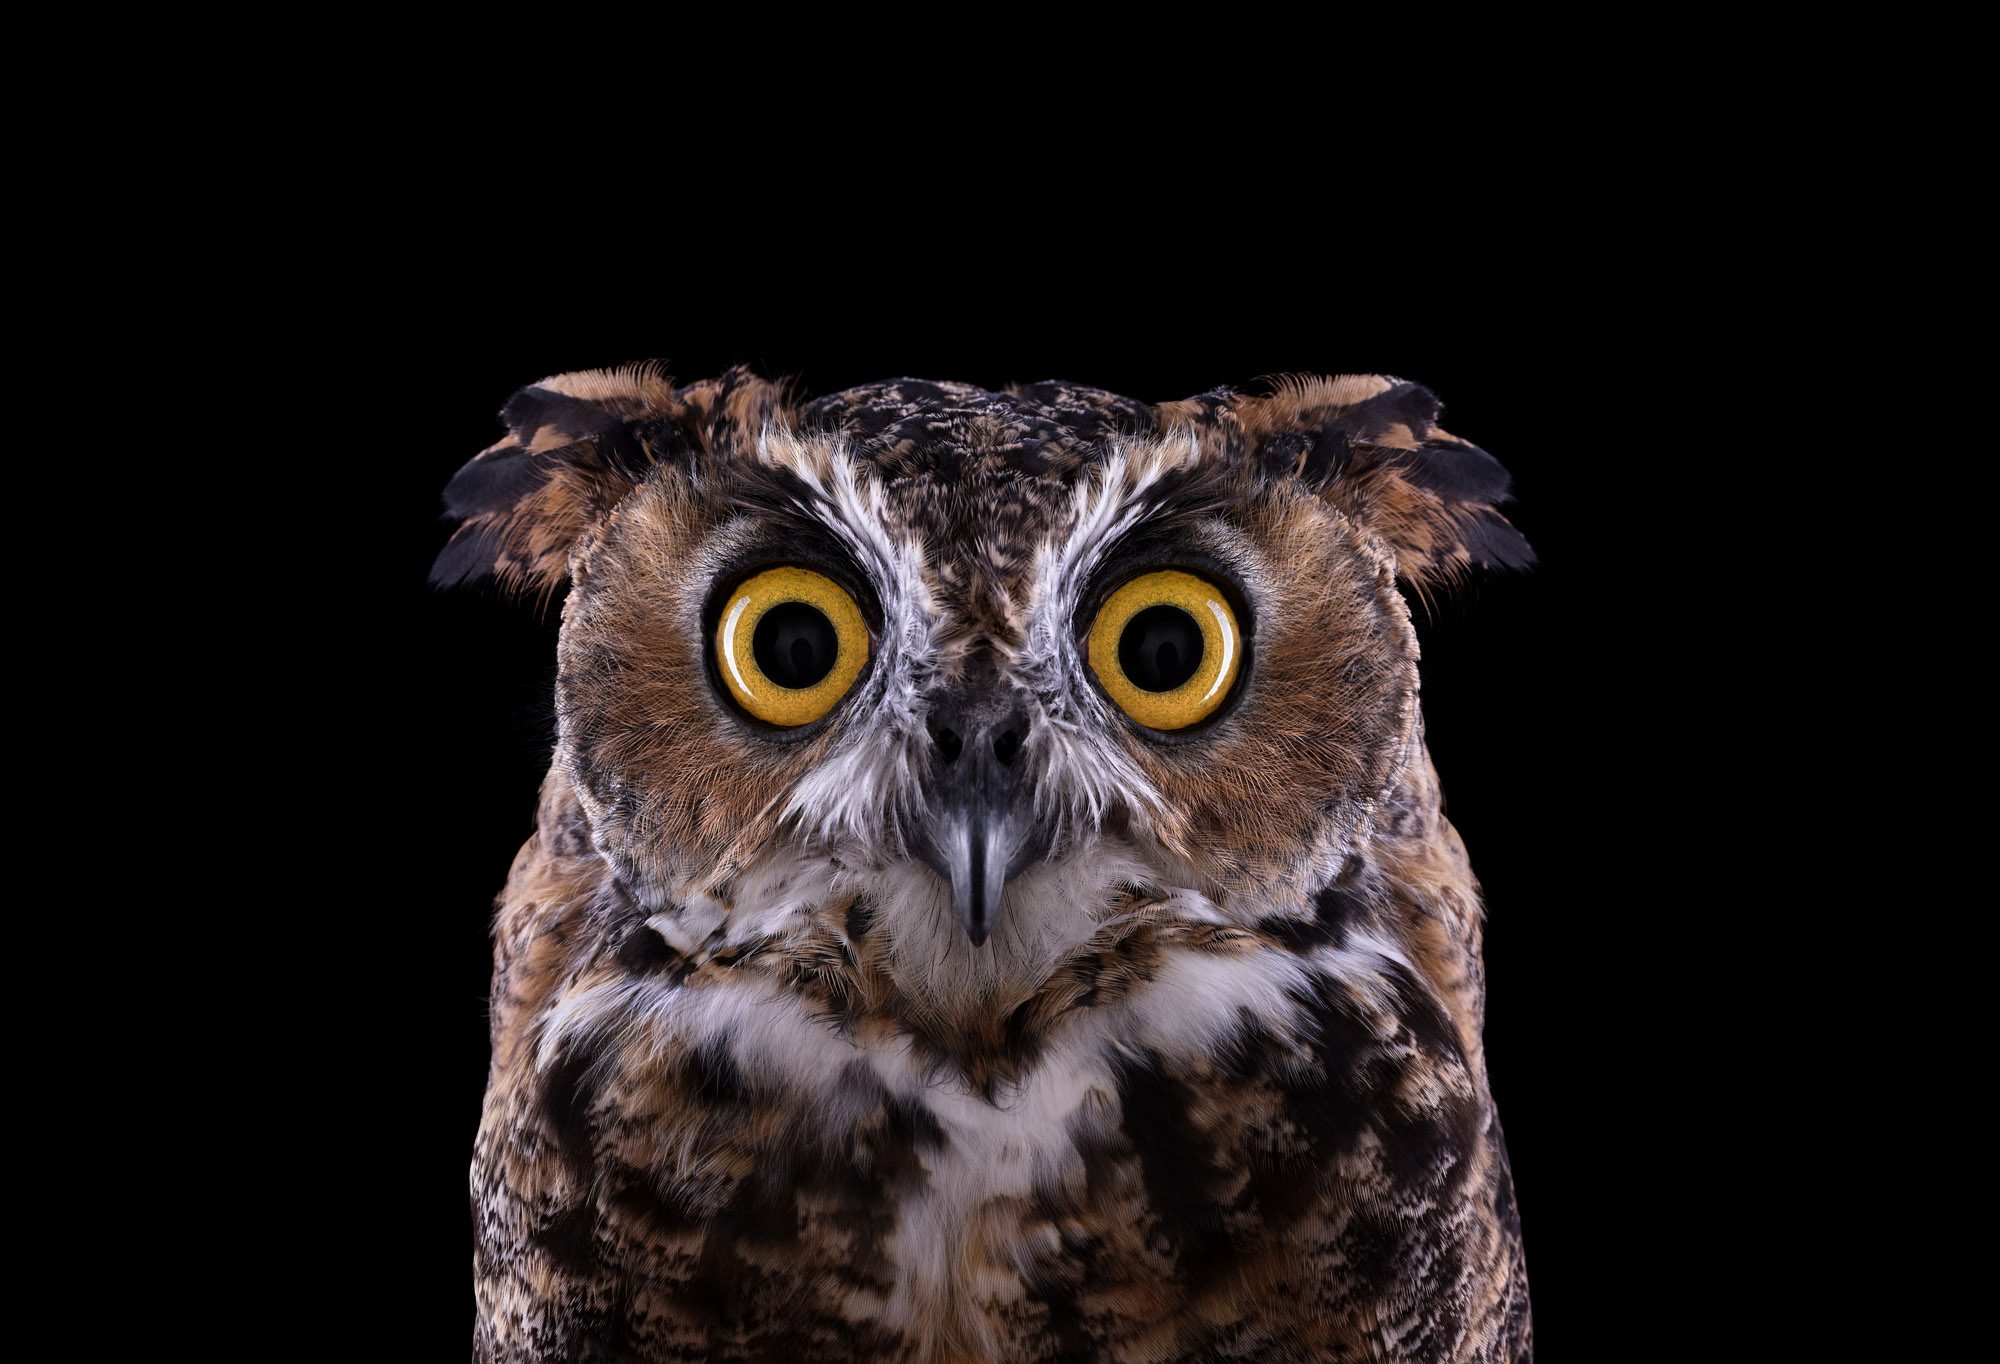 Great Horned Owl #3, Espanola, NM, 2011 by Brad Wilson